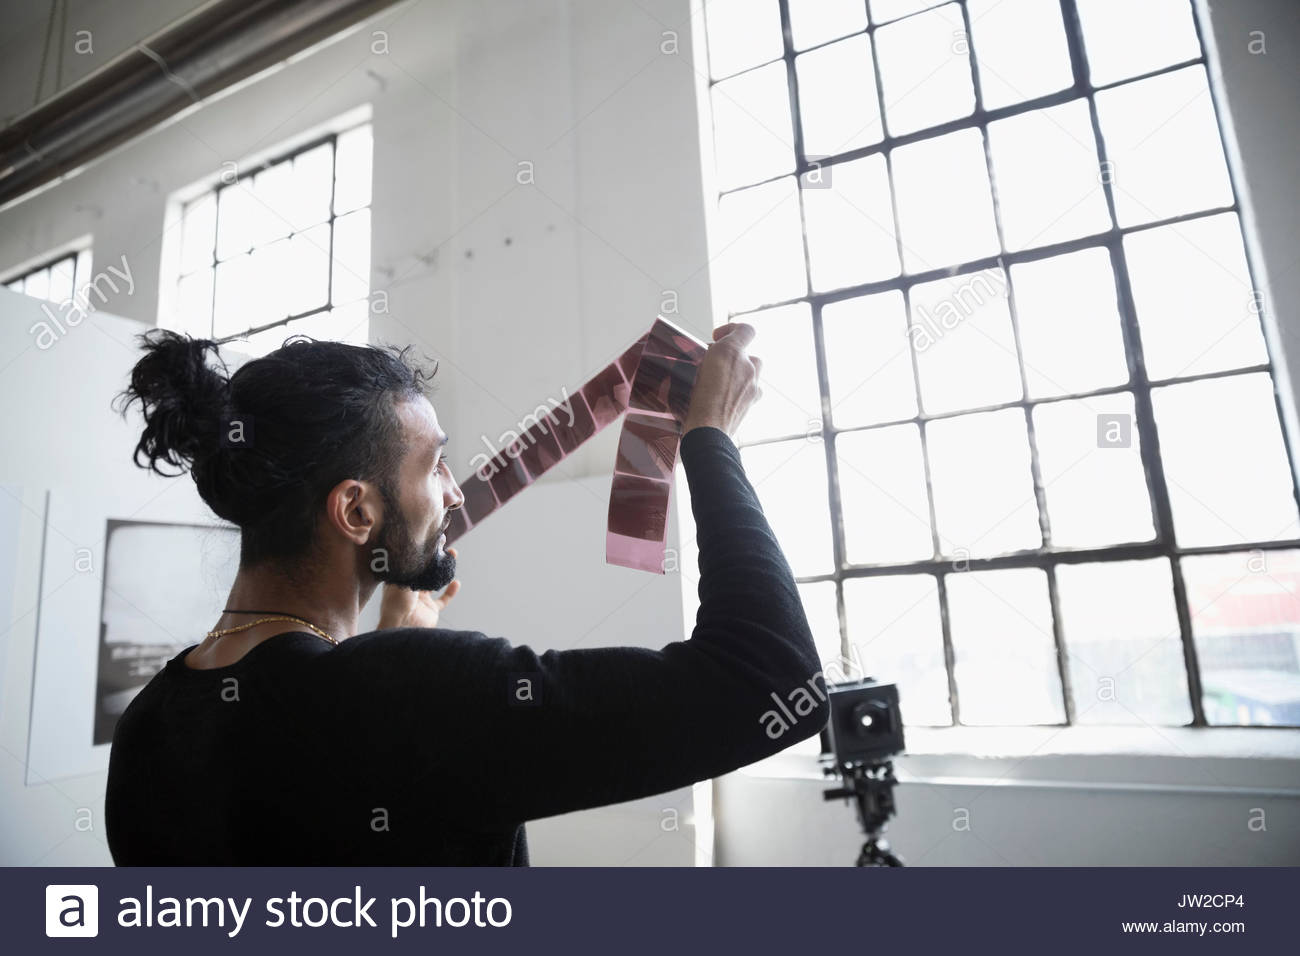 Male photographer examining photograph negatives in art studio - Stock Image